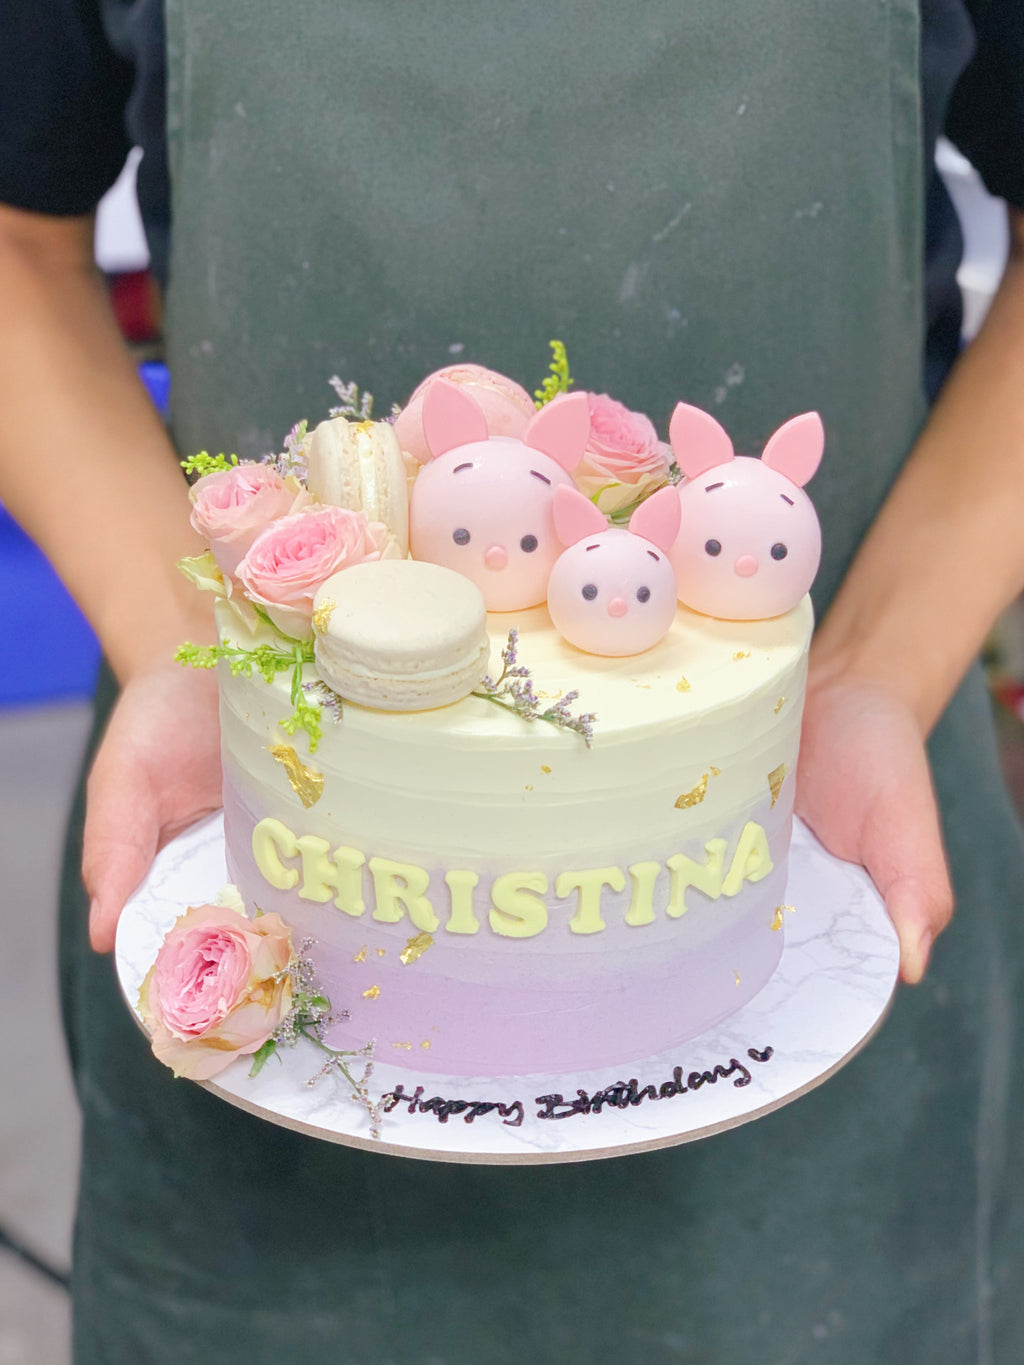 Ombre Floral and Macaron Cake with Piglets